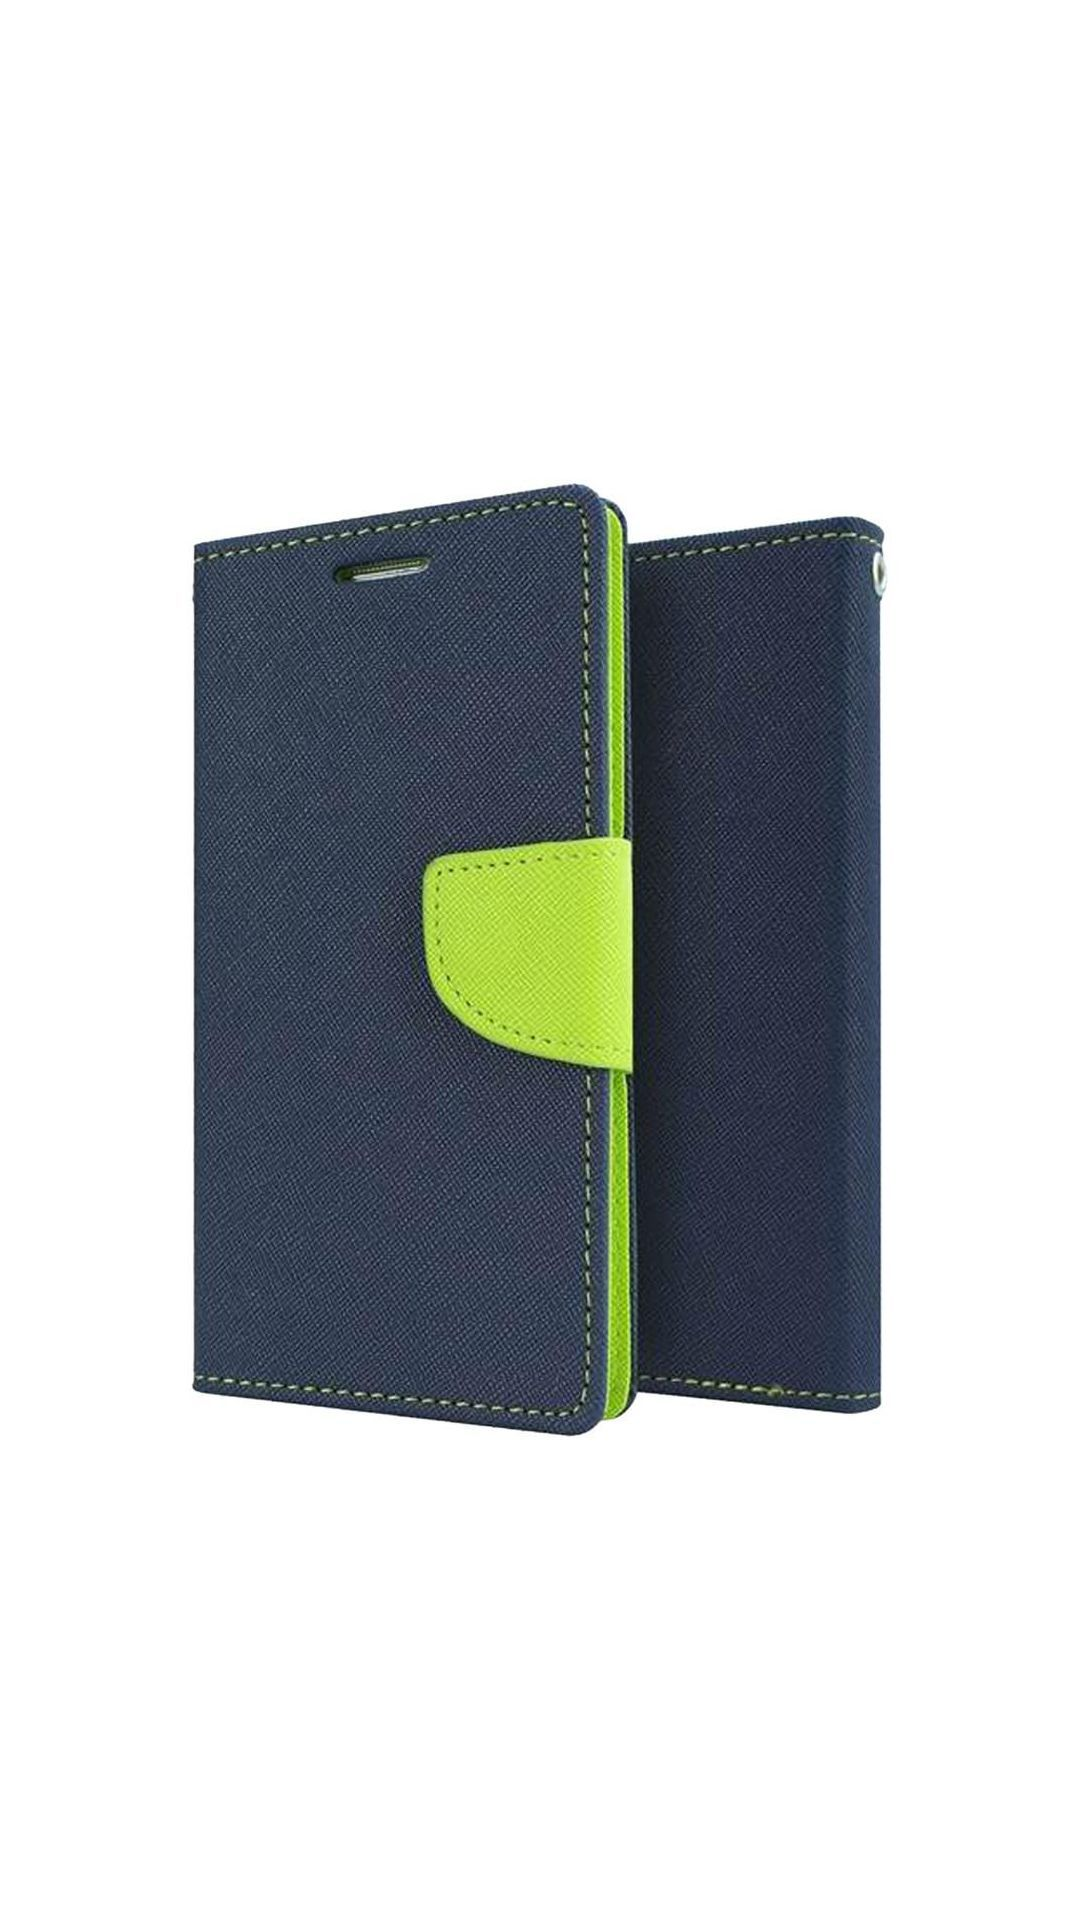 HTC Desire 820 Flip Cover by Close2deal - Green